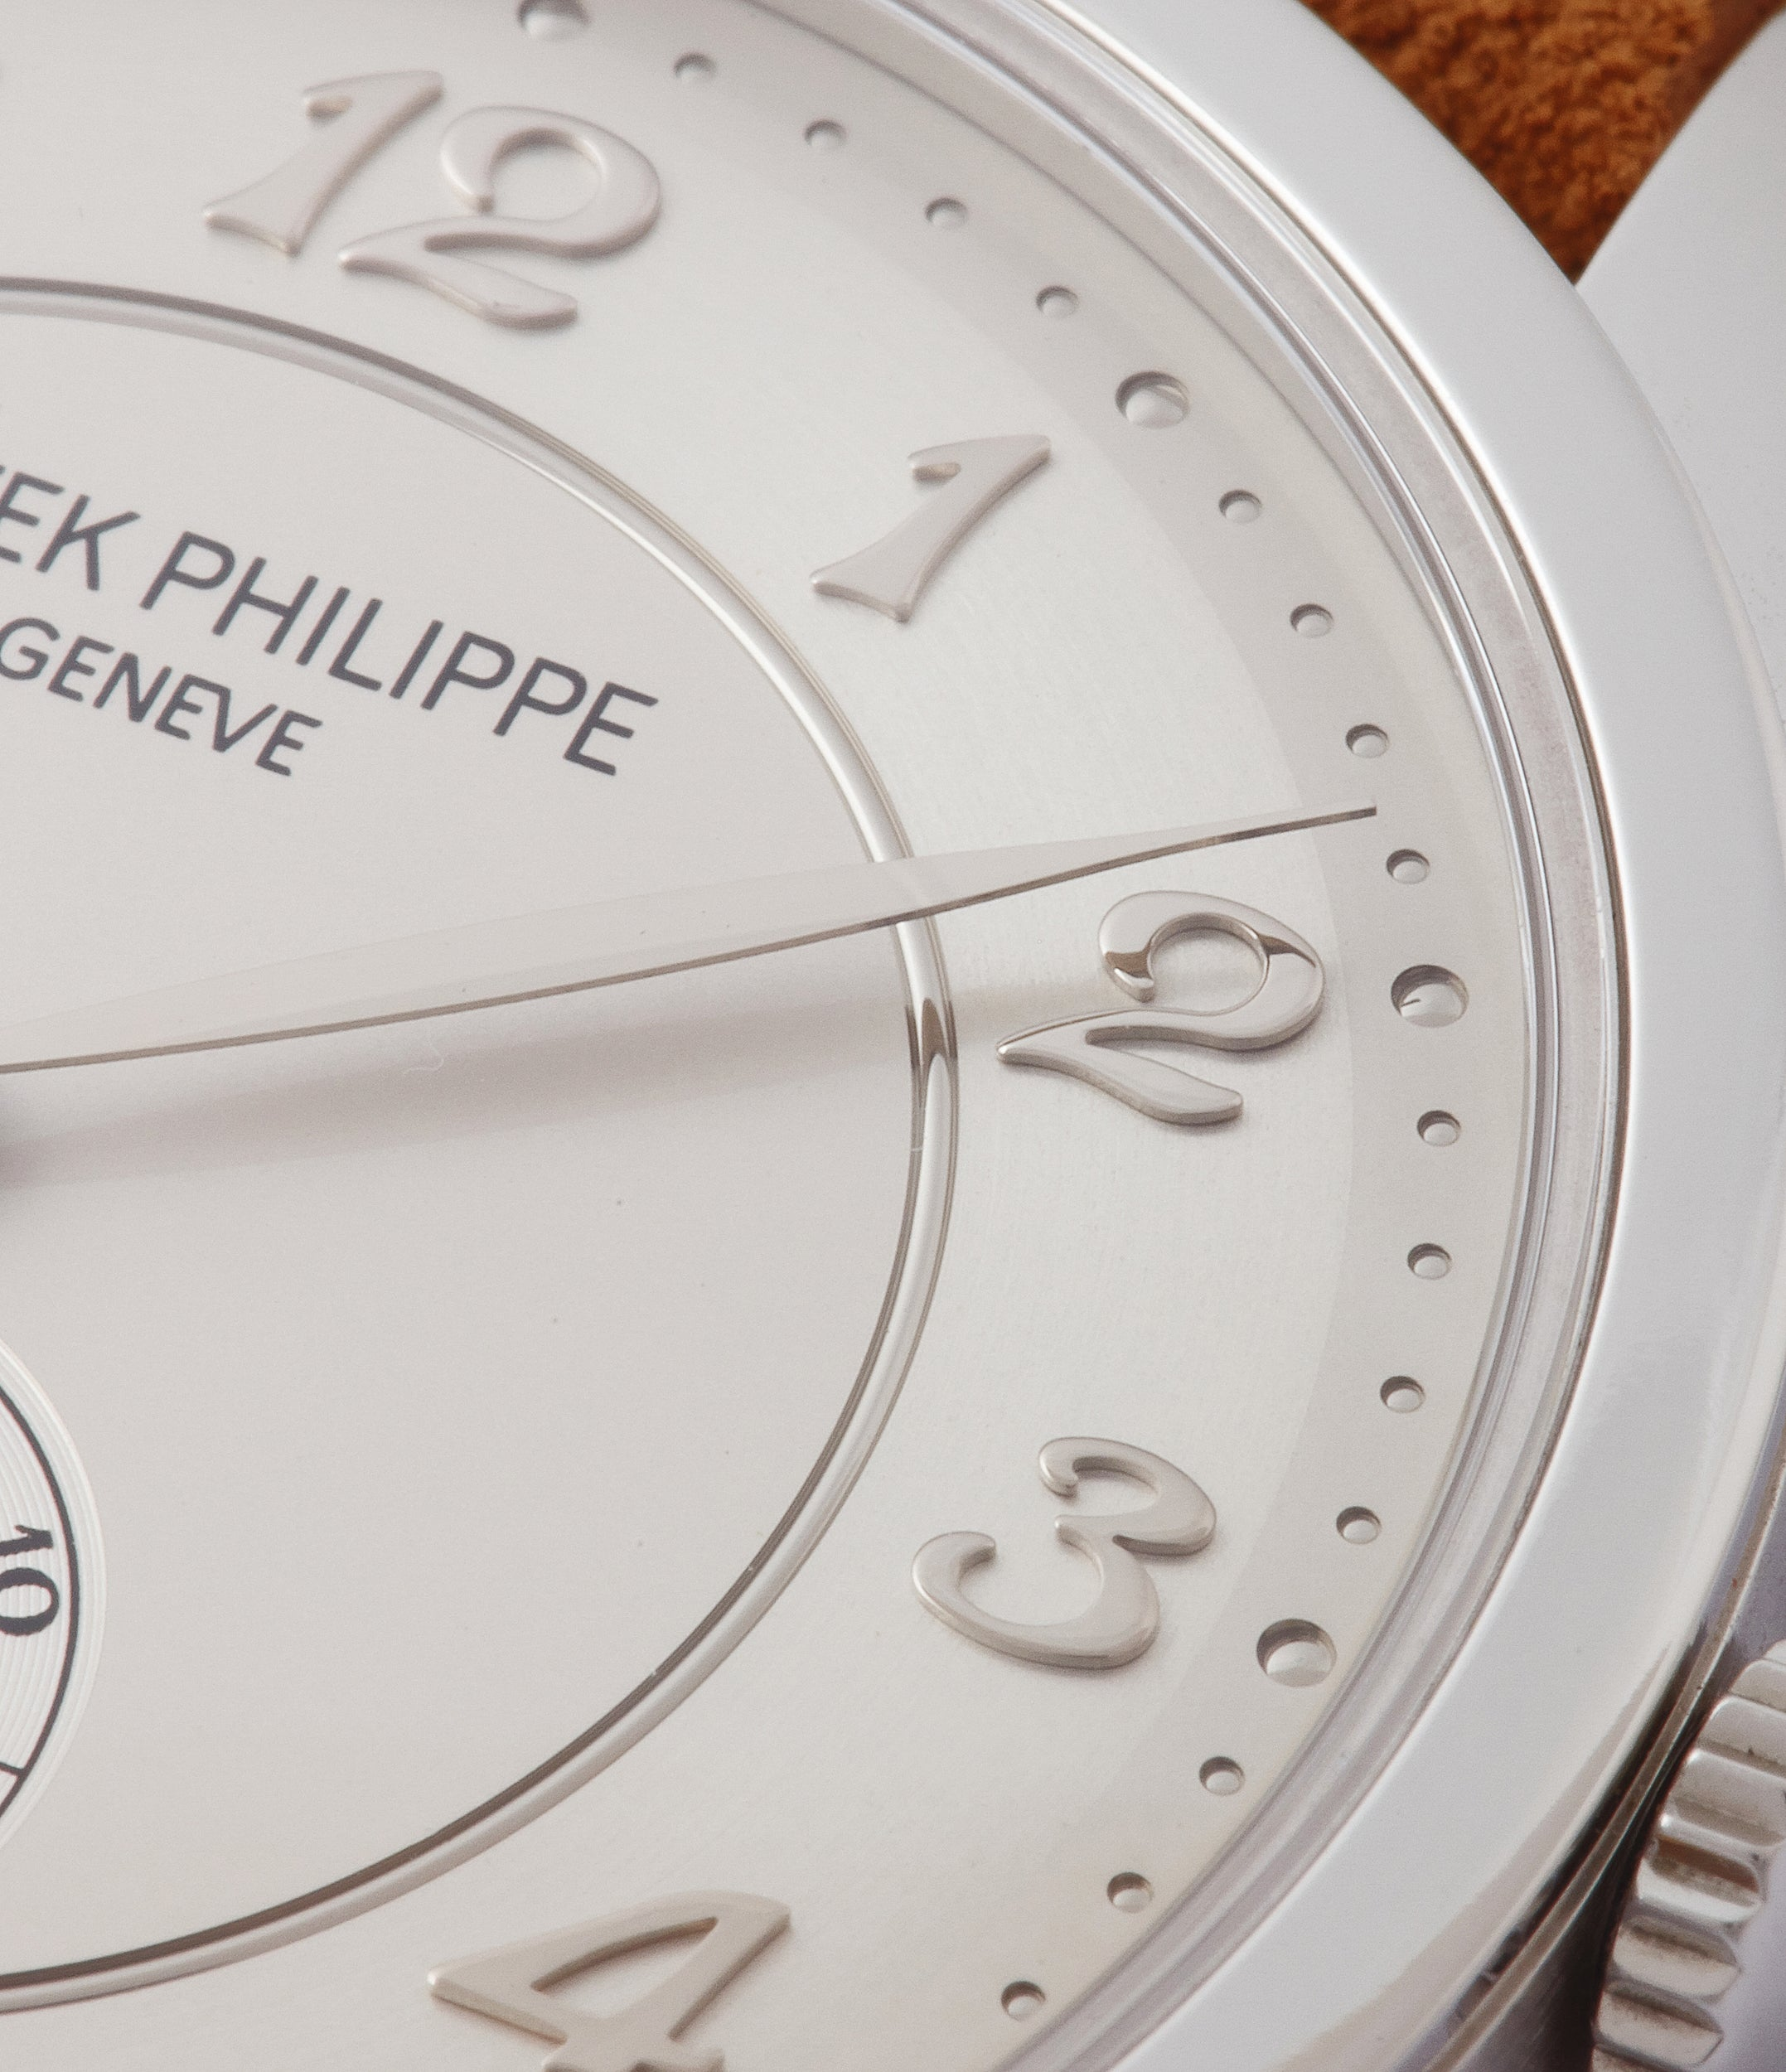 silver dial Breguet numeral Patek Philippe 5196P Calatrava time-only platinum men's dress watch for sale online at A Collected Man London UK specialist of rare watches